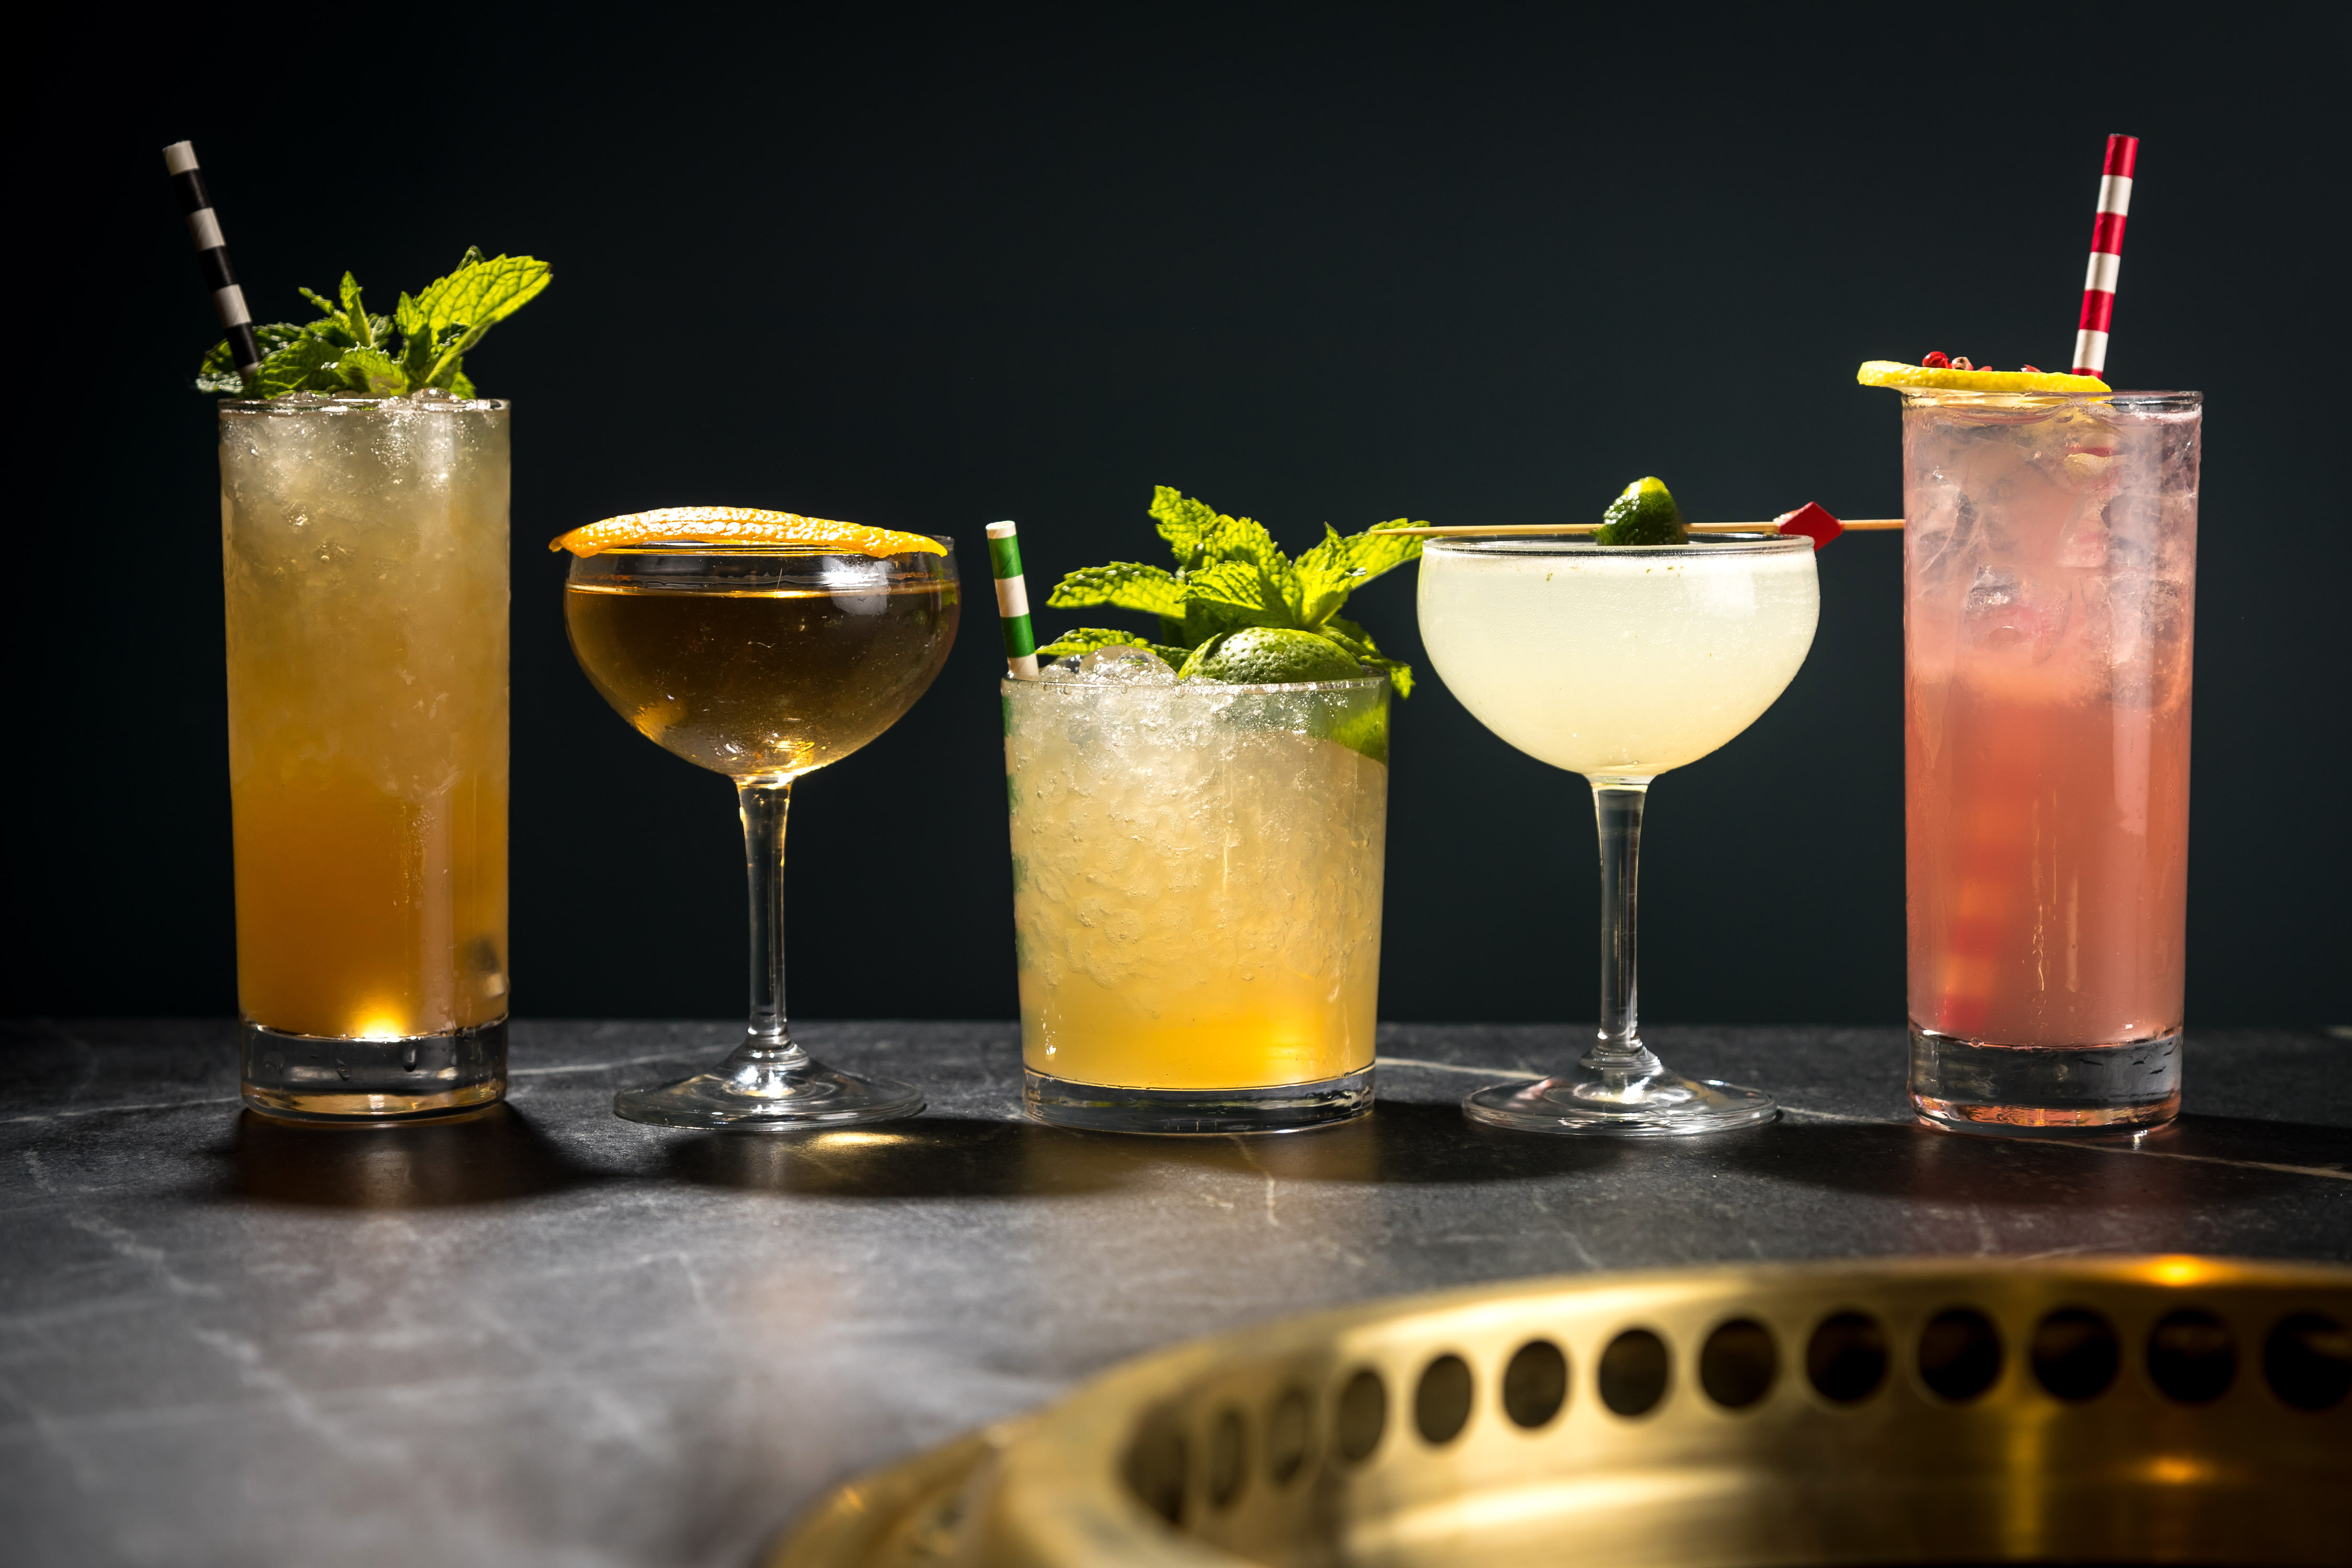 A lineup of five mixed cocktails on the bar at Cote